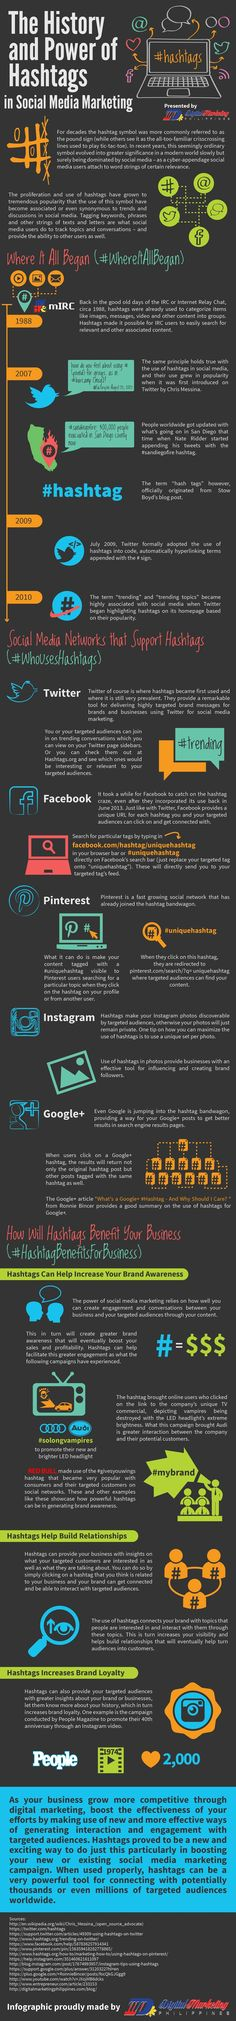 The History And Power Of Hashtags In Social Media Marketing #infographic